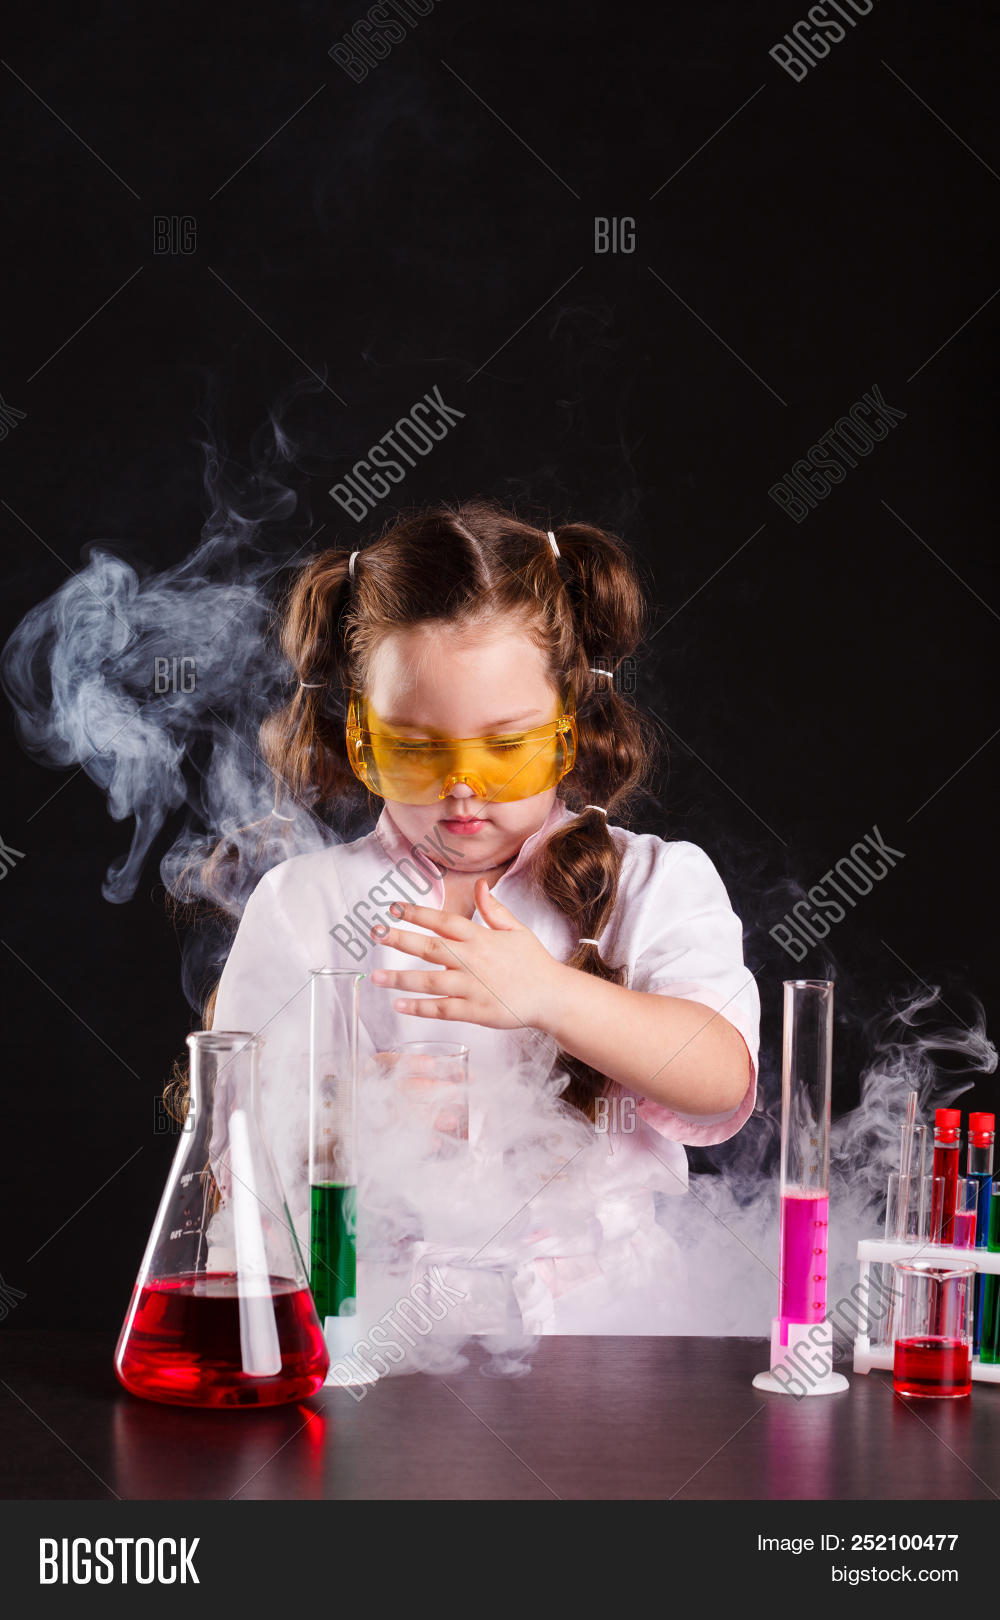 Chemical Experiments Image & Photo (Free Trial) | Bigstock